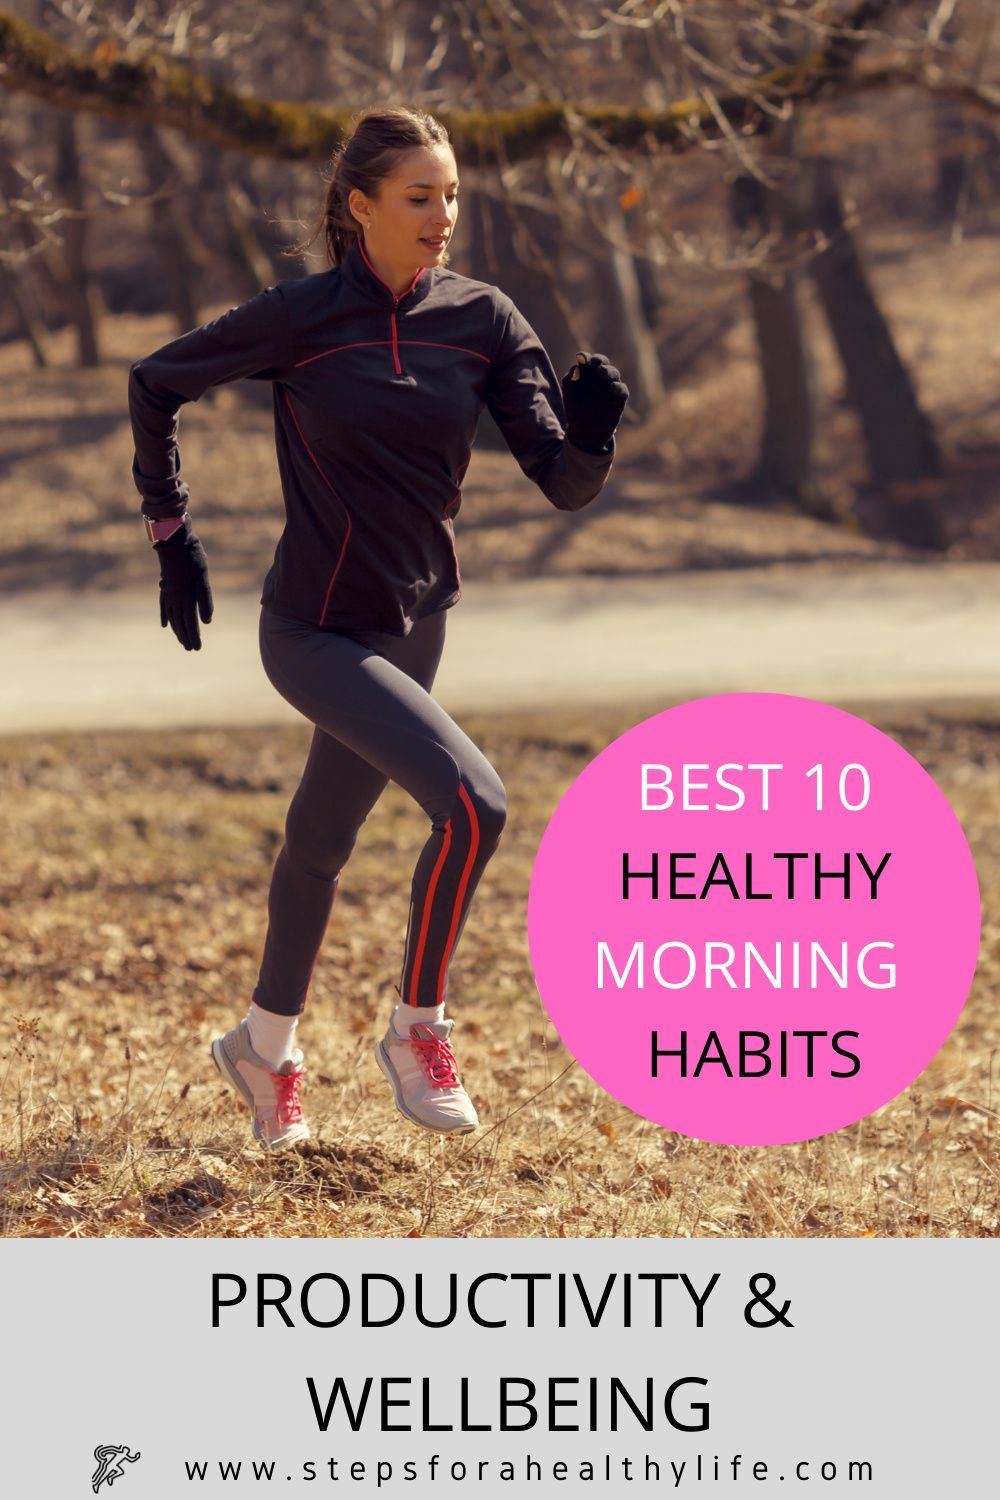 The best 10 healthy morning habits: Productivity & wellbeing